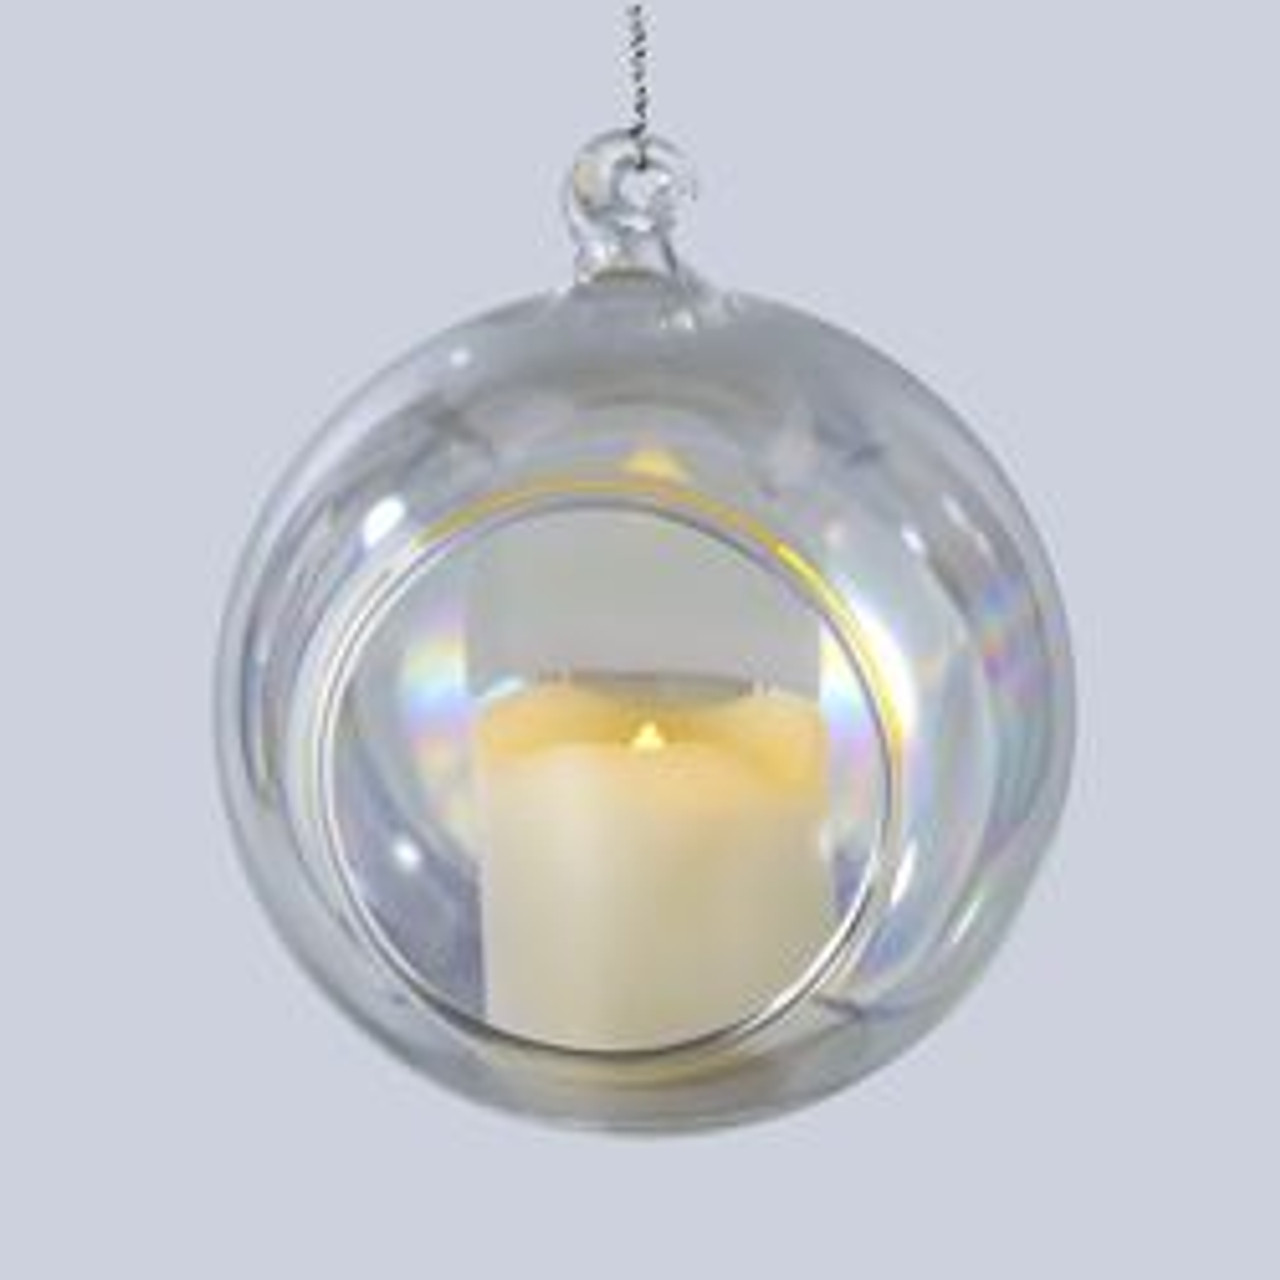 pack of 6 battery operated votive candles in iridescent glass ball christmas ornaments 35 31341799 - Christmas Decorations Battery Operated Candles